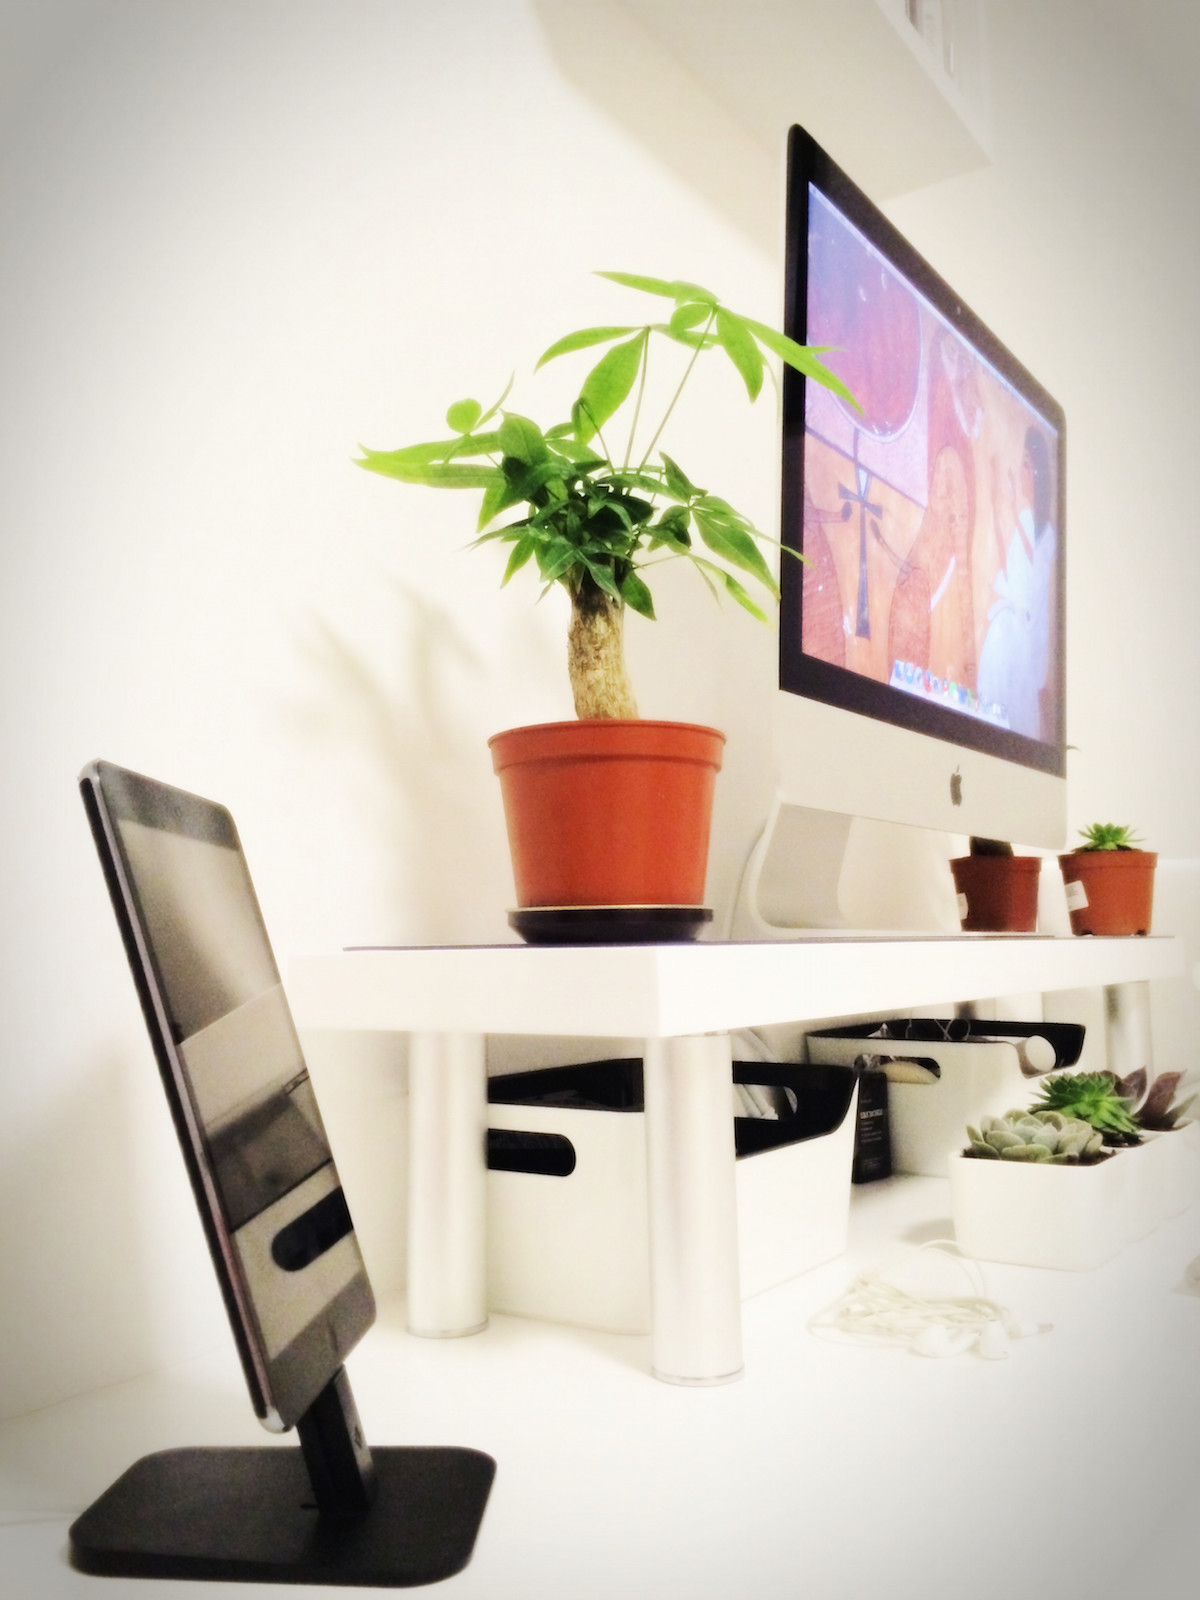 Imac 21 5 Inch Ipad Mini With Retina Display Ipad2 Macbook Air Twelve South Bookarc Hirise Little Plants